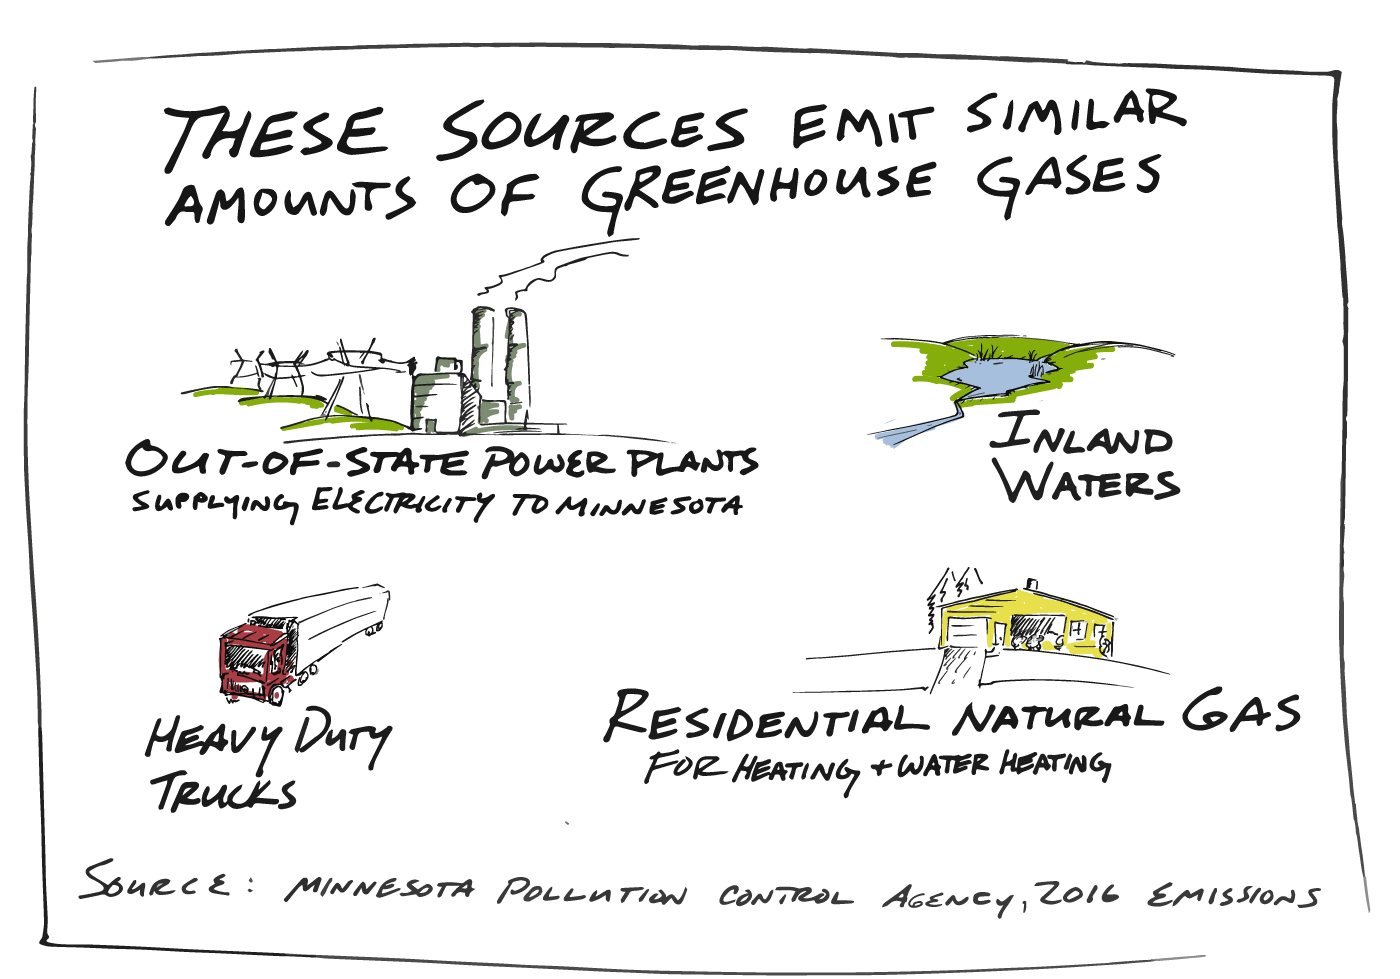 Each source contributes a similar amount of greenhouse gasses